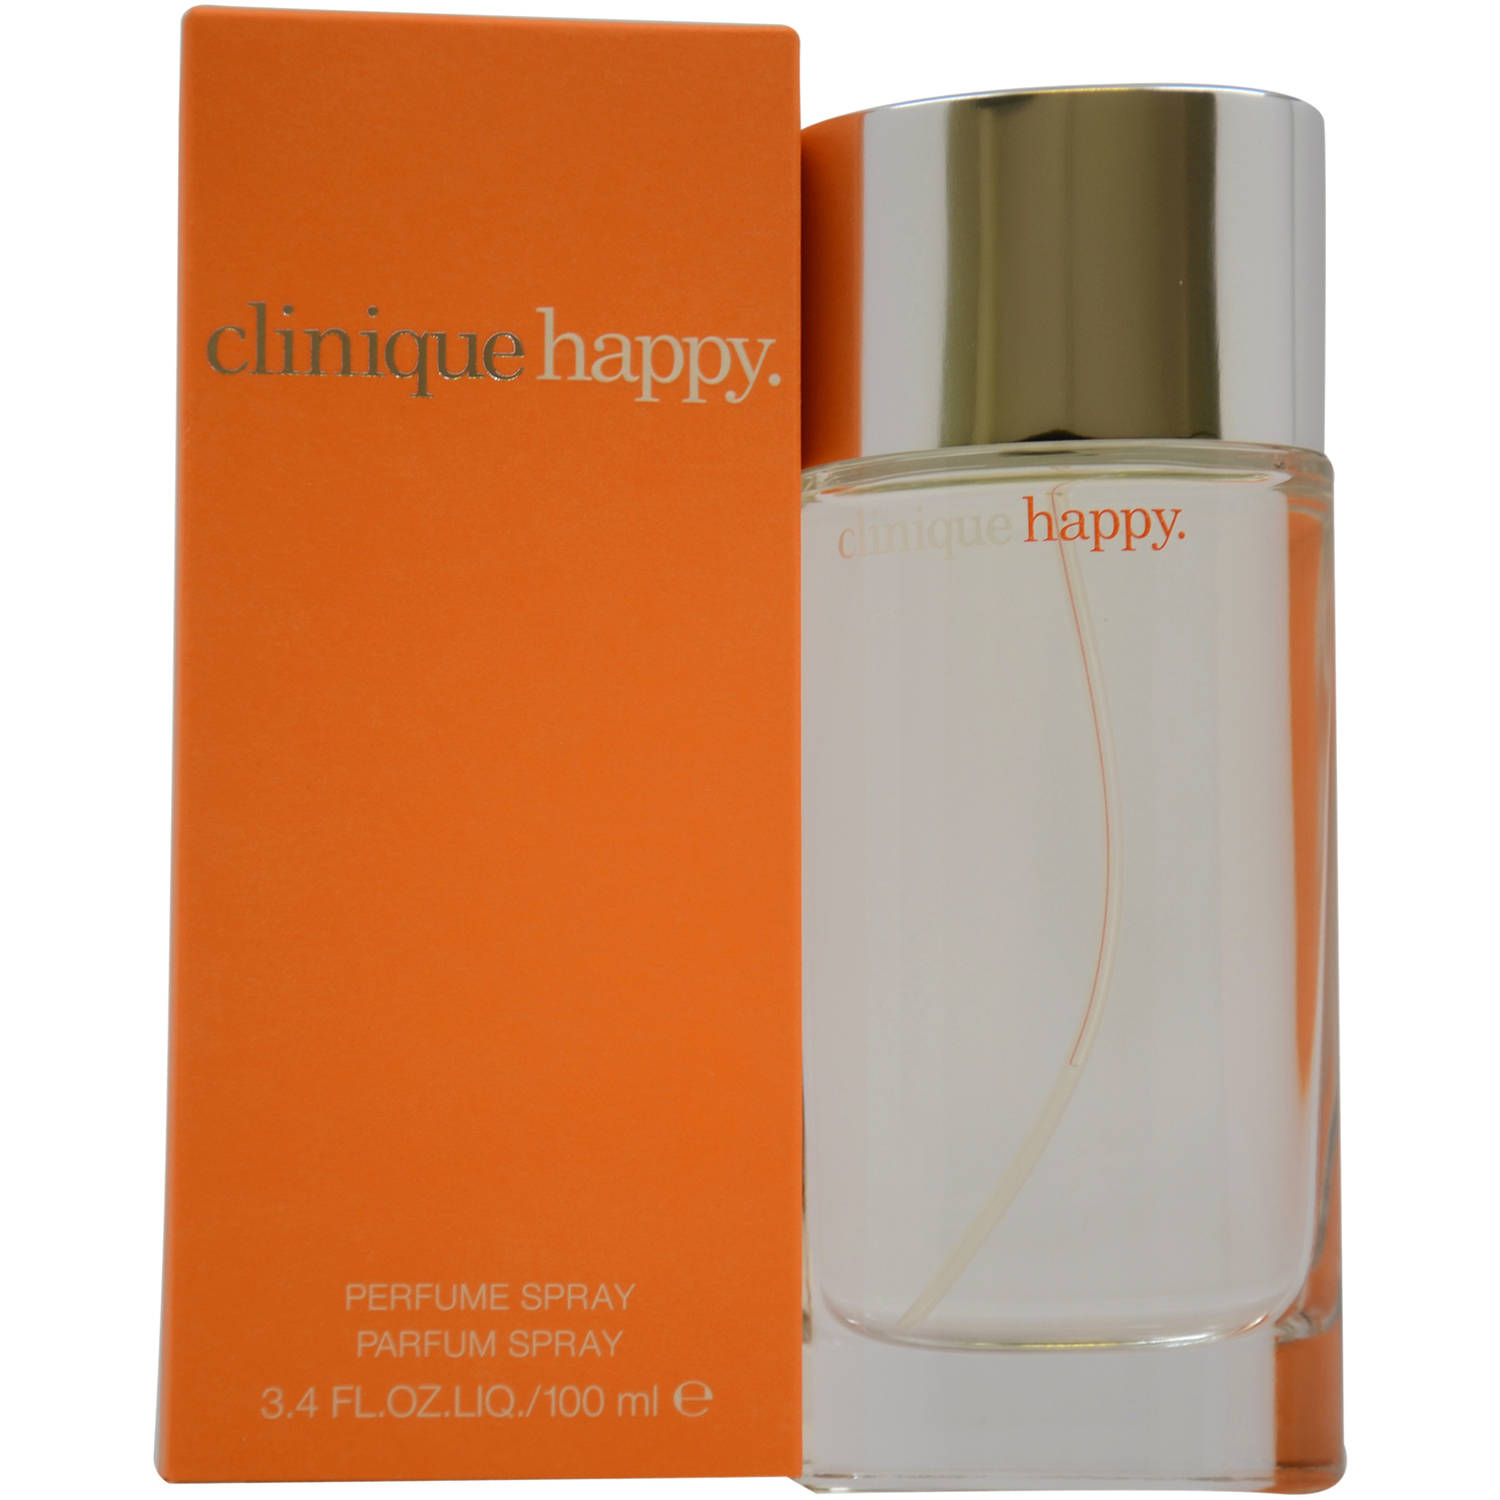 Clinique Happy for Women Perfume Spray, 3.4 fl oz - Walmart.com